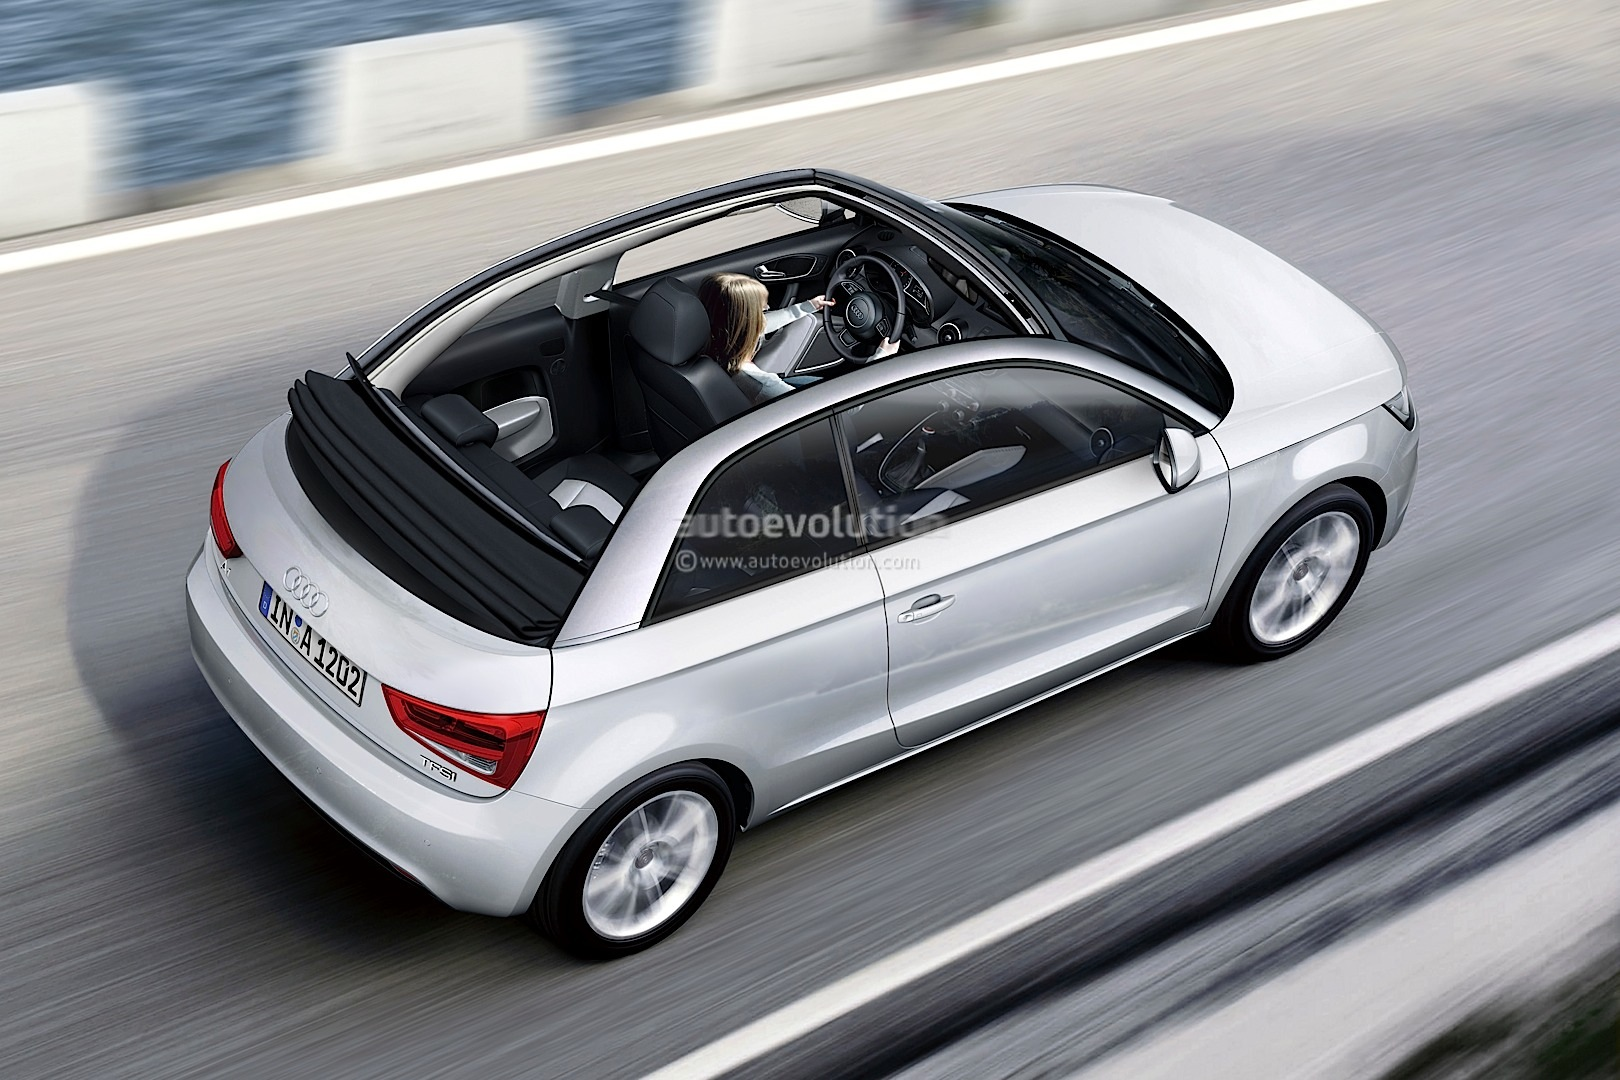 2014 Audi A1 Cabriolet Rendering Autoevolution